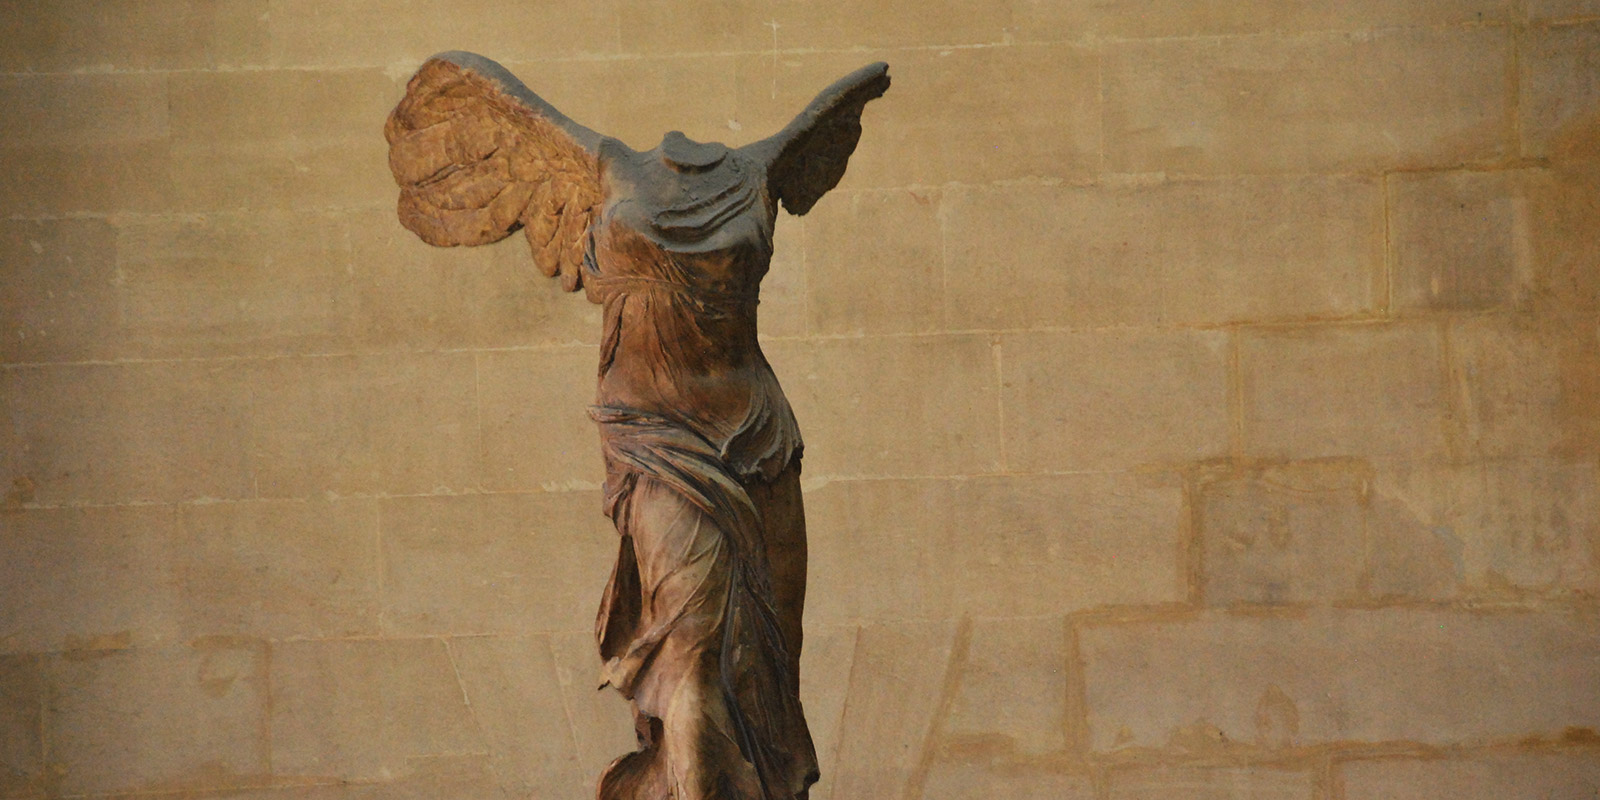 A headless angel statue in Louvre France